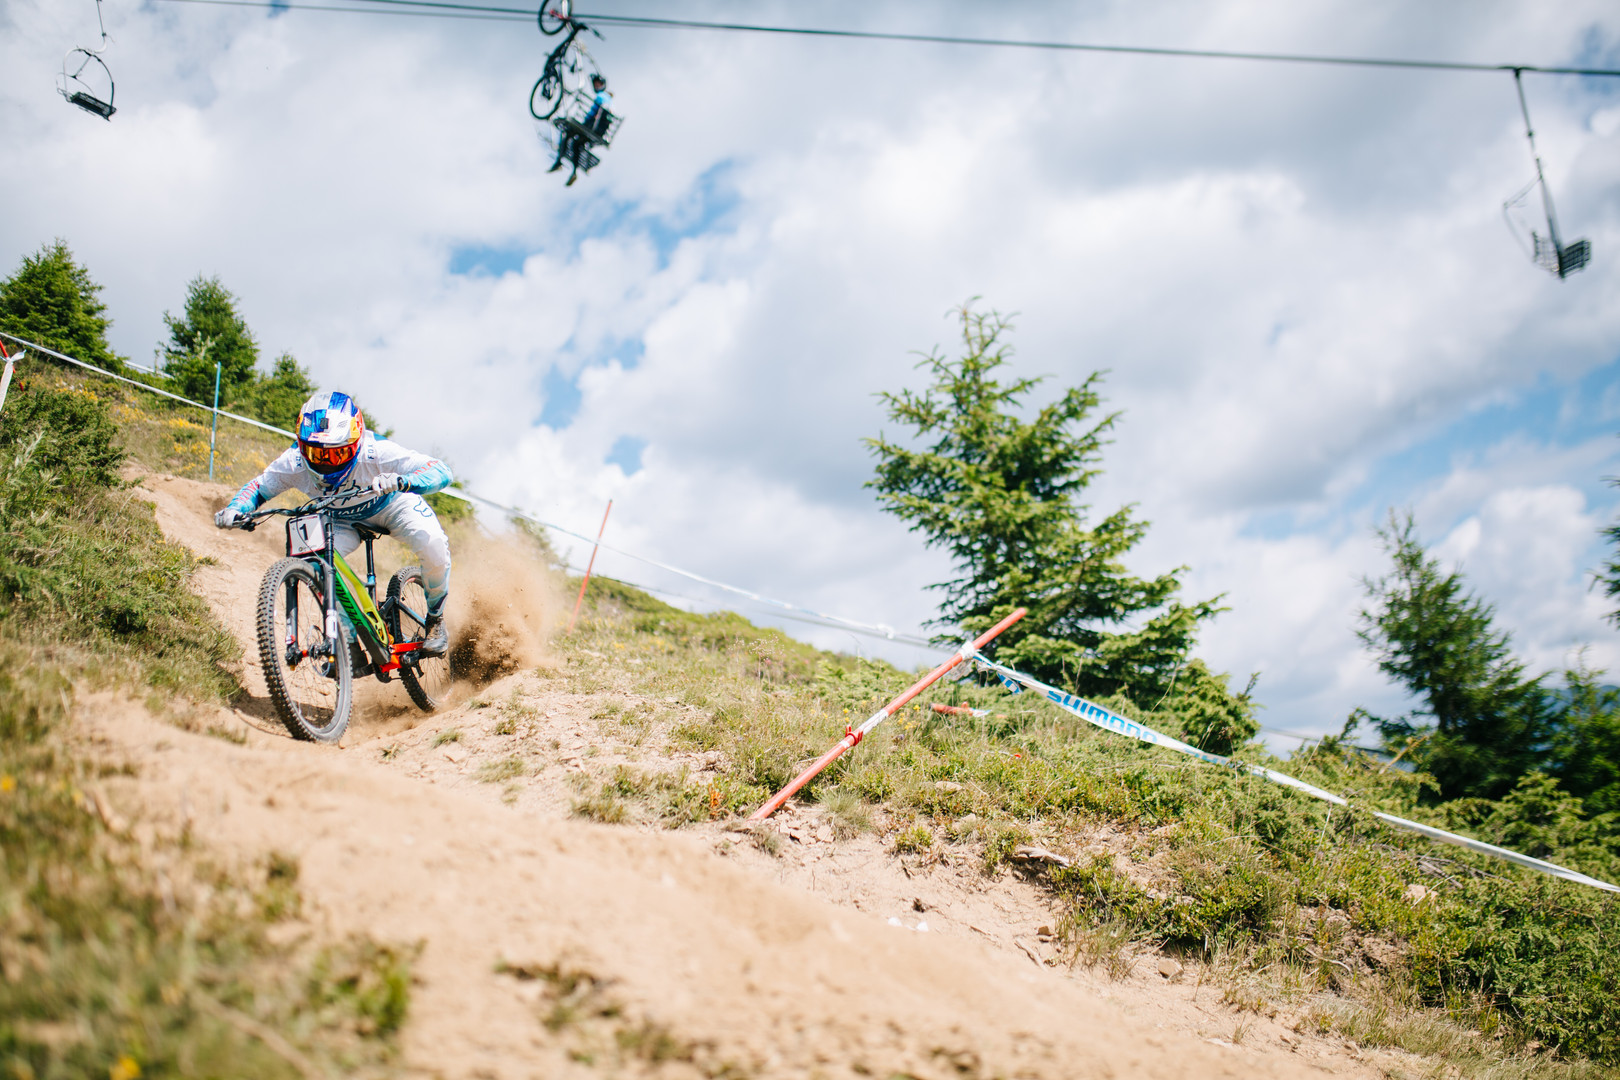 Loic Bruni at Les Gets World Cup